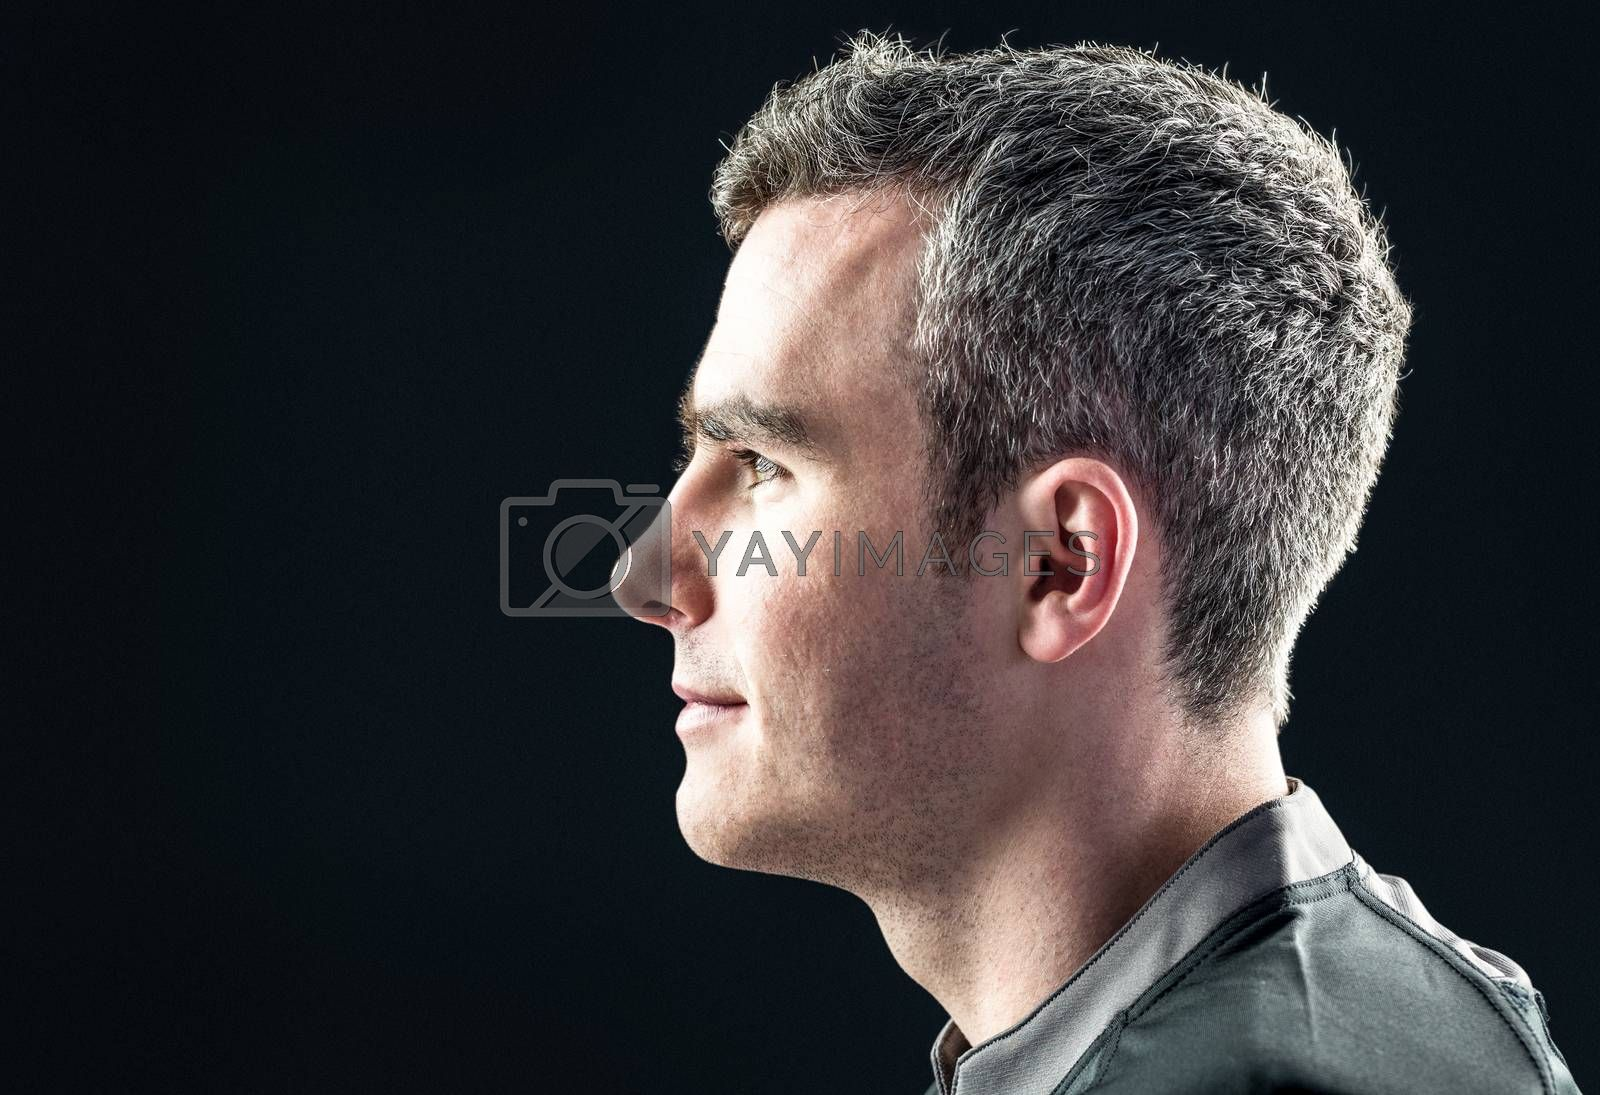 Royalty free image of Rugby player on a profile view by Wavebreakmedia